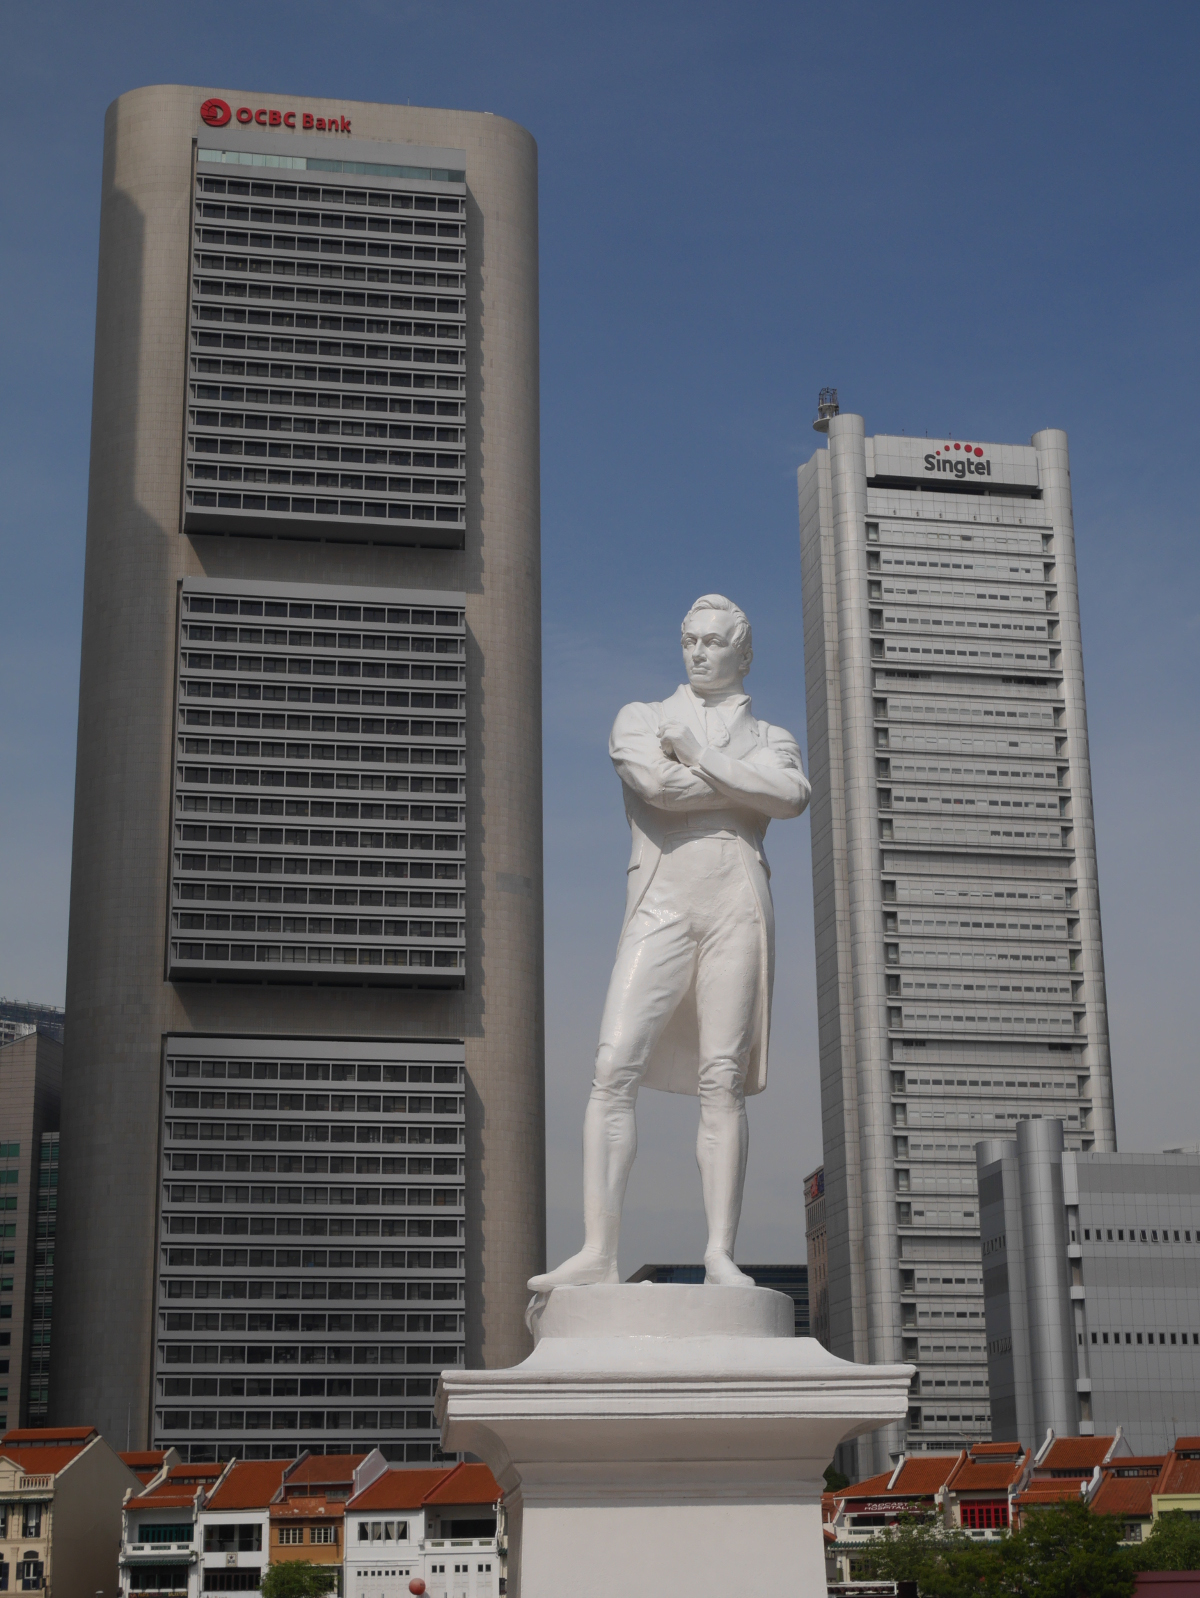 Statue of Sir Thomas Stamford Raffles in Singapore.